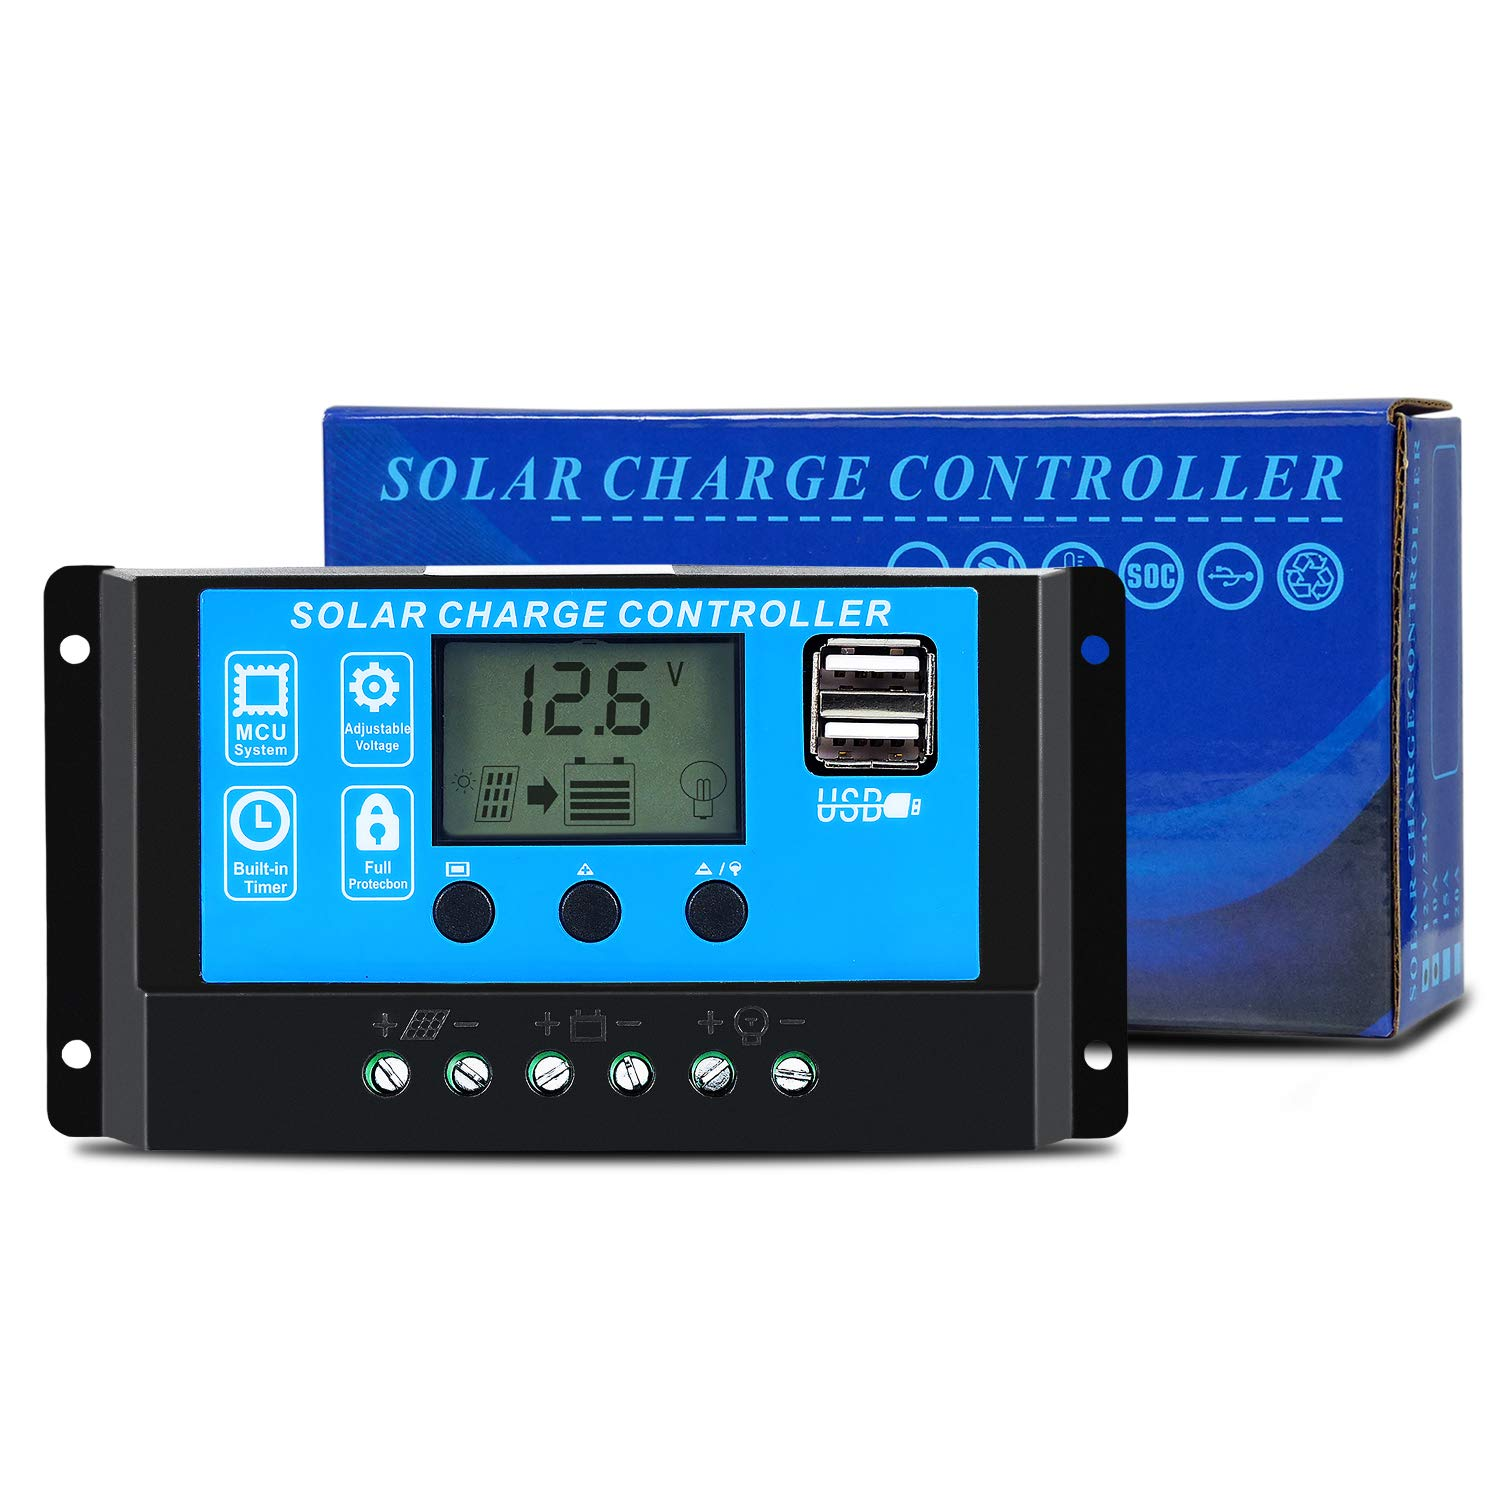 Ela Solar Charger Controller 20A 12V/24V Auto Work Intelligent PWM Solar Panel Charge Controller Regulator with USB Ports LCD Display Overload Protection Timer Setting ON/Off (GC2024) by Ela (Image #1)